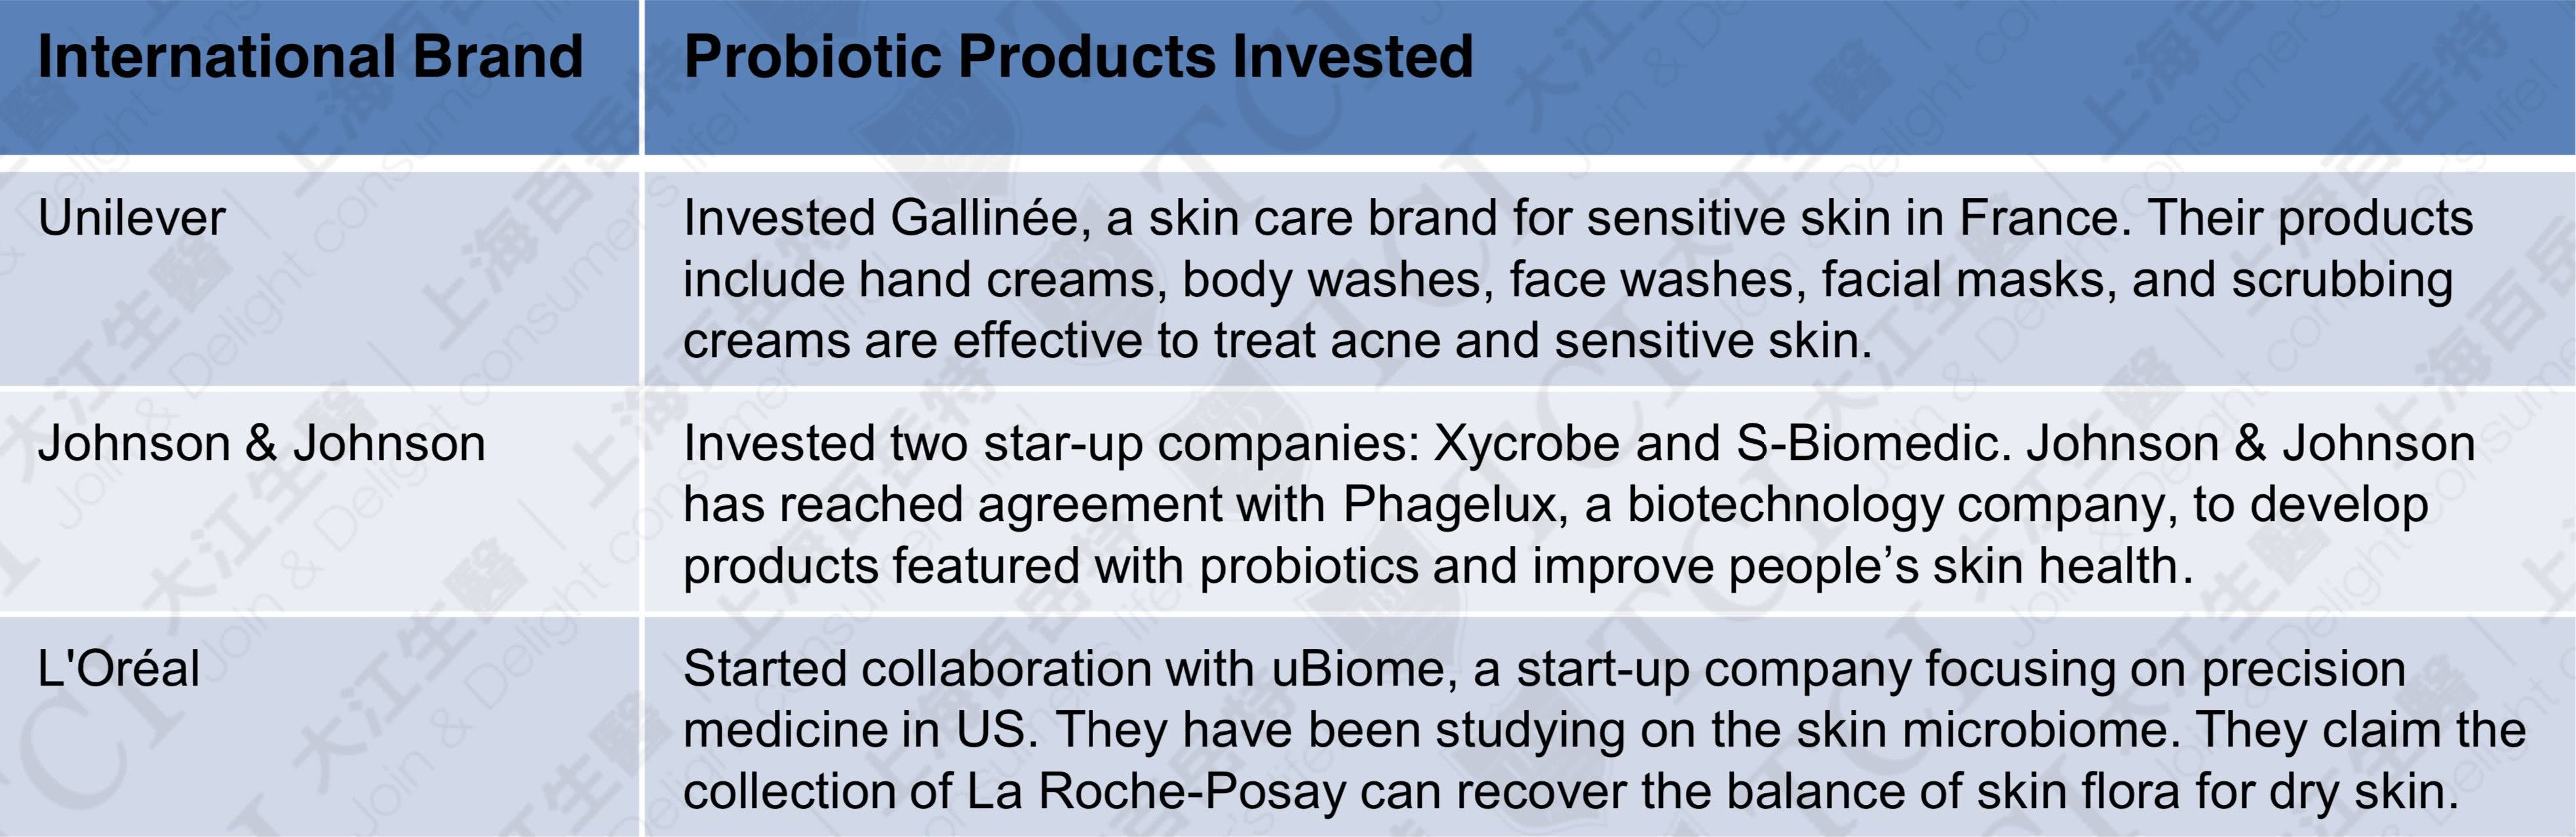 The investments for probiotic skin care products from international skin care manufacturers, Data source: TCI